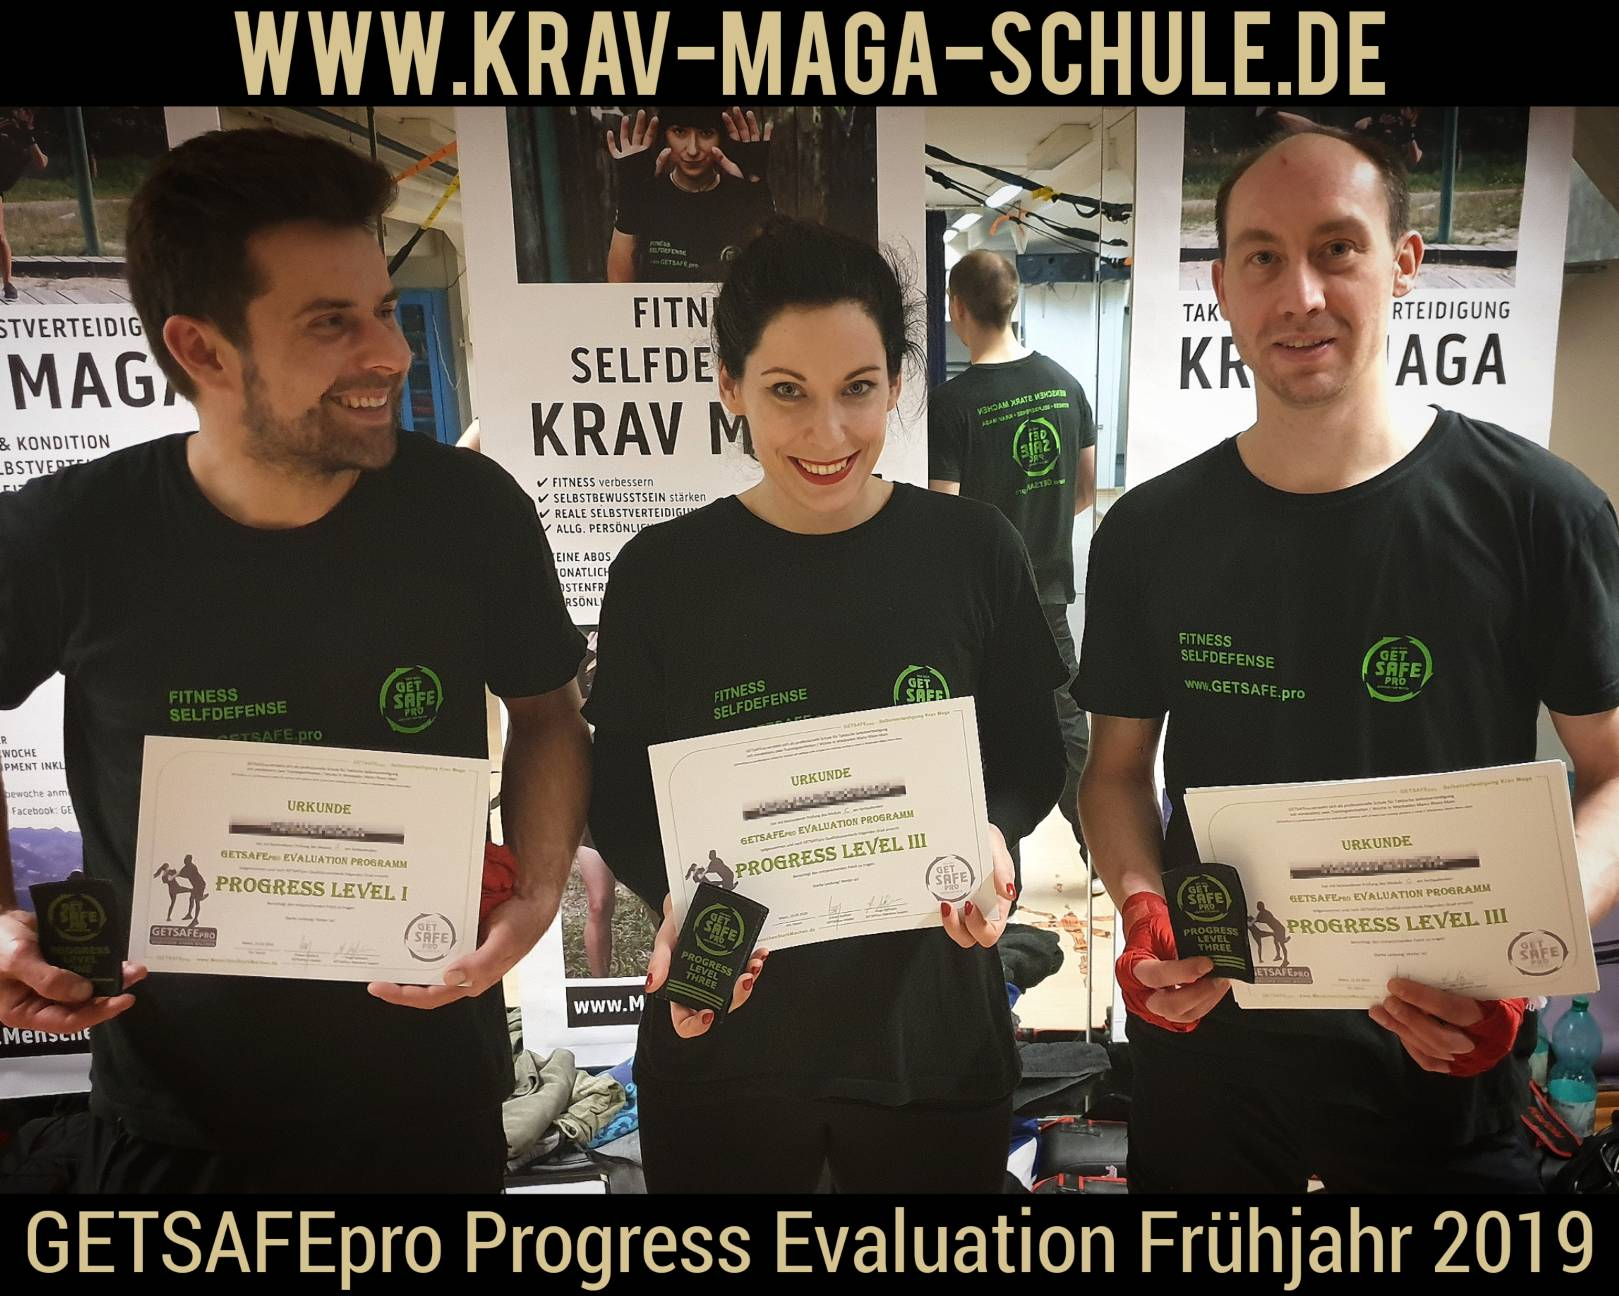 GETSAFEpro Krav Maga Prüfung Progress Evaluation Level Test (2)